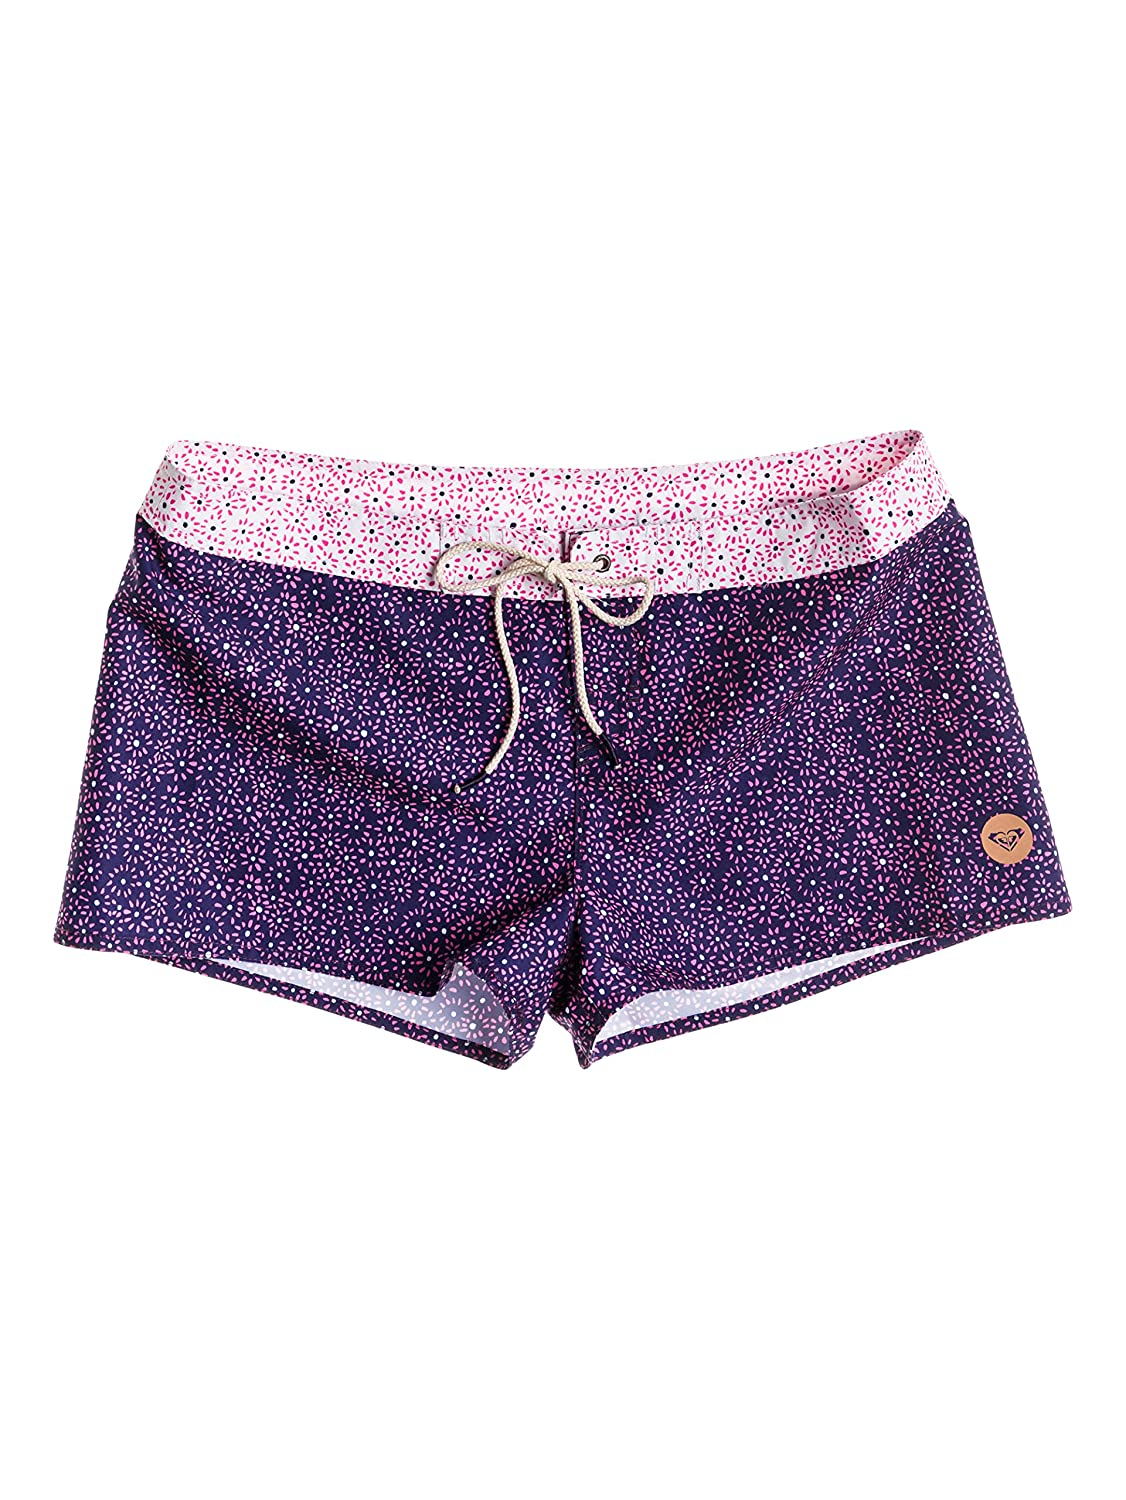 Roxy Damen Boardshorts 2 J